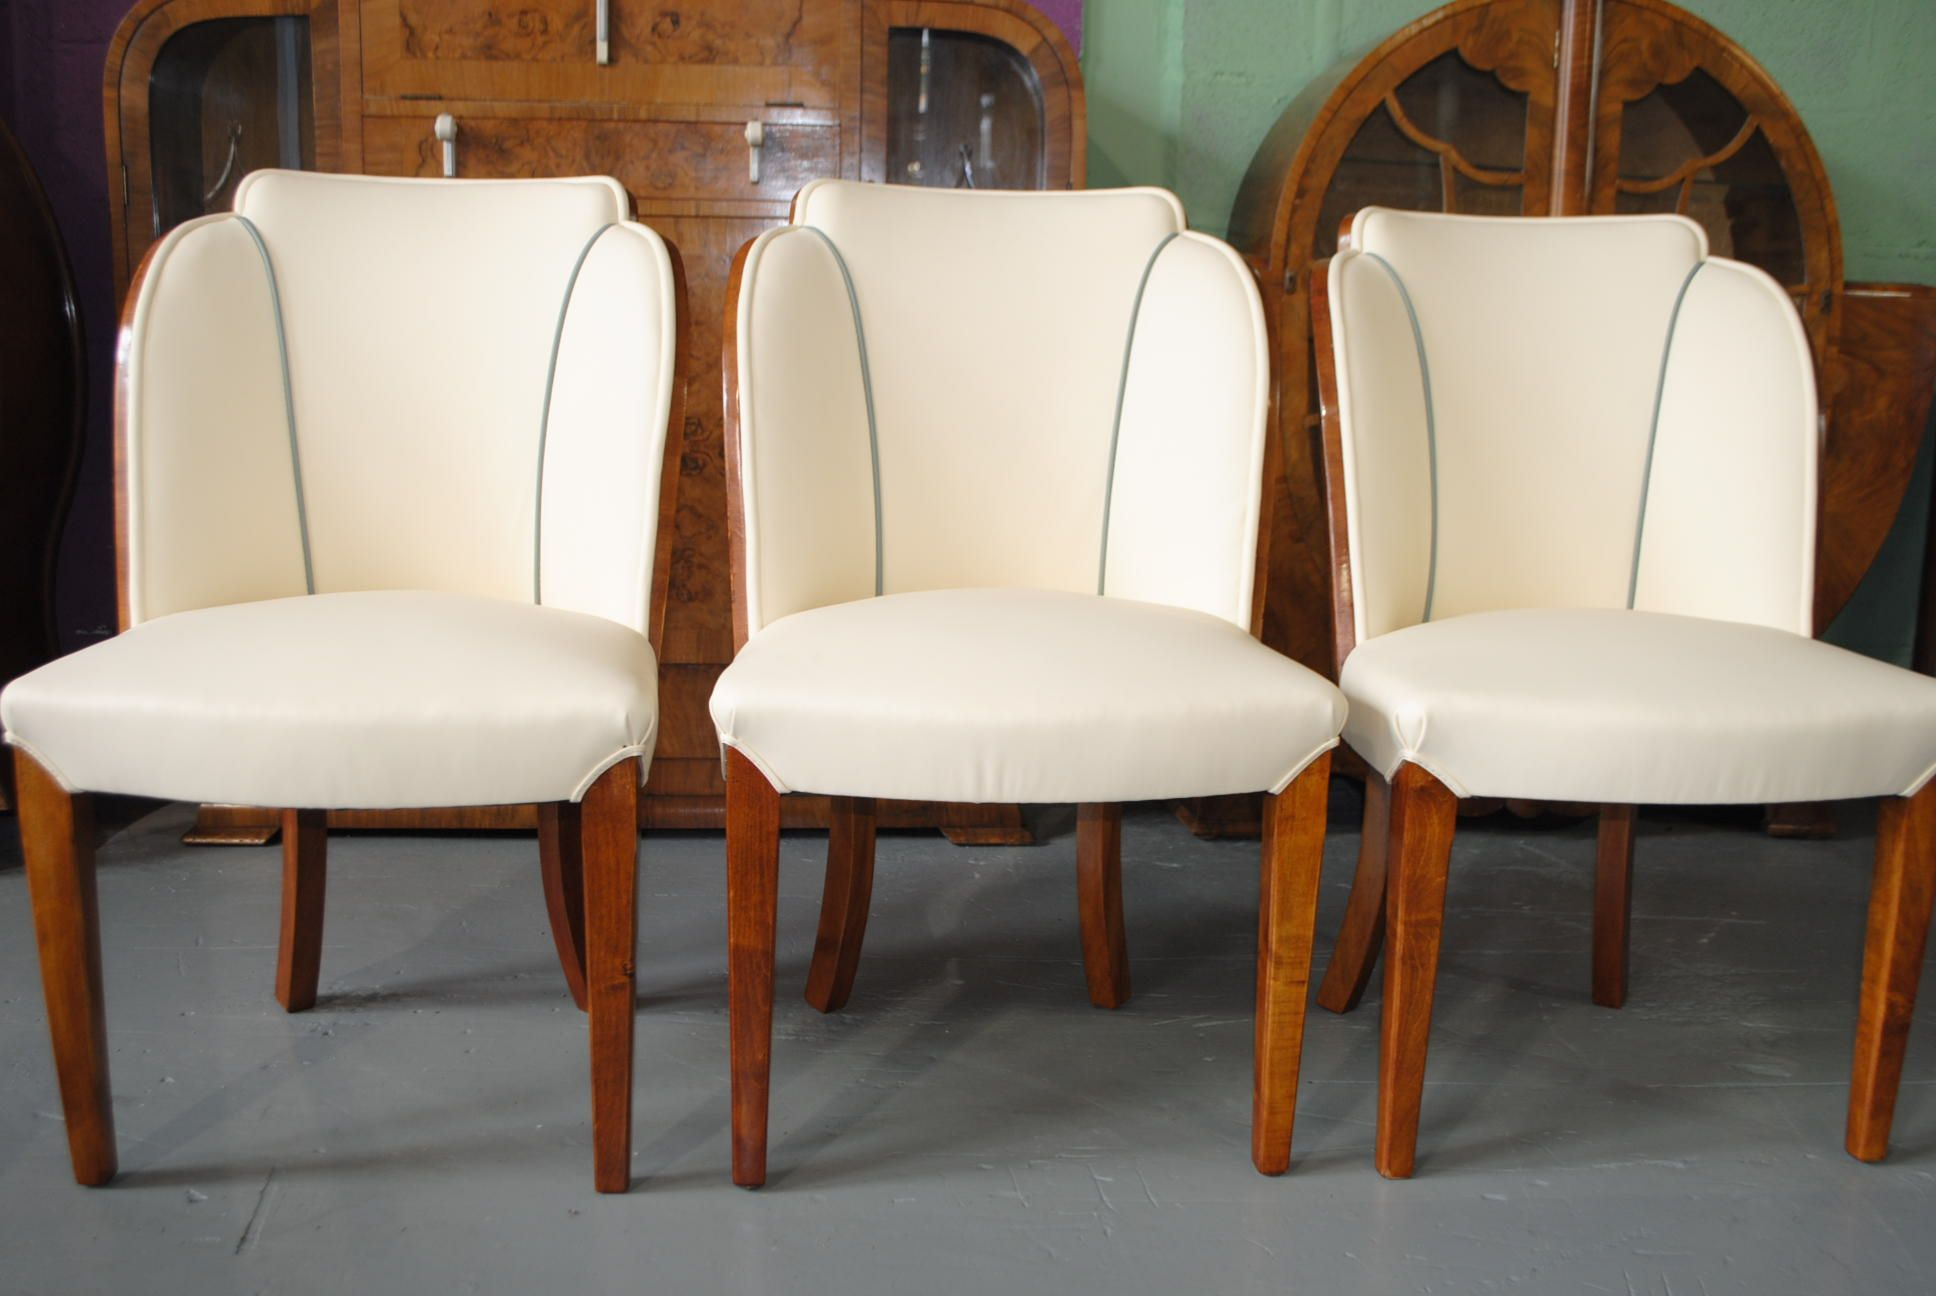 Epstein Dining Table And 6 Cloud Back Chairs In Fiddle Back Maple Intended  For Art Deco Dining Room Furniture